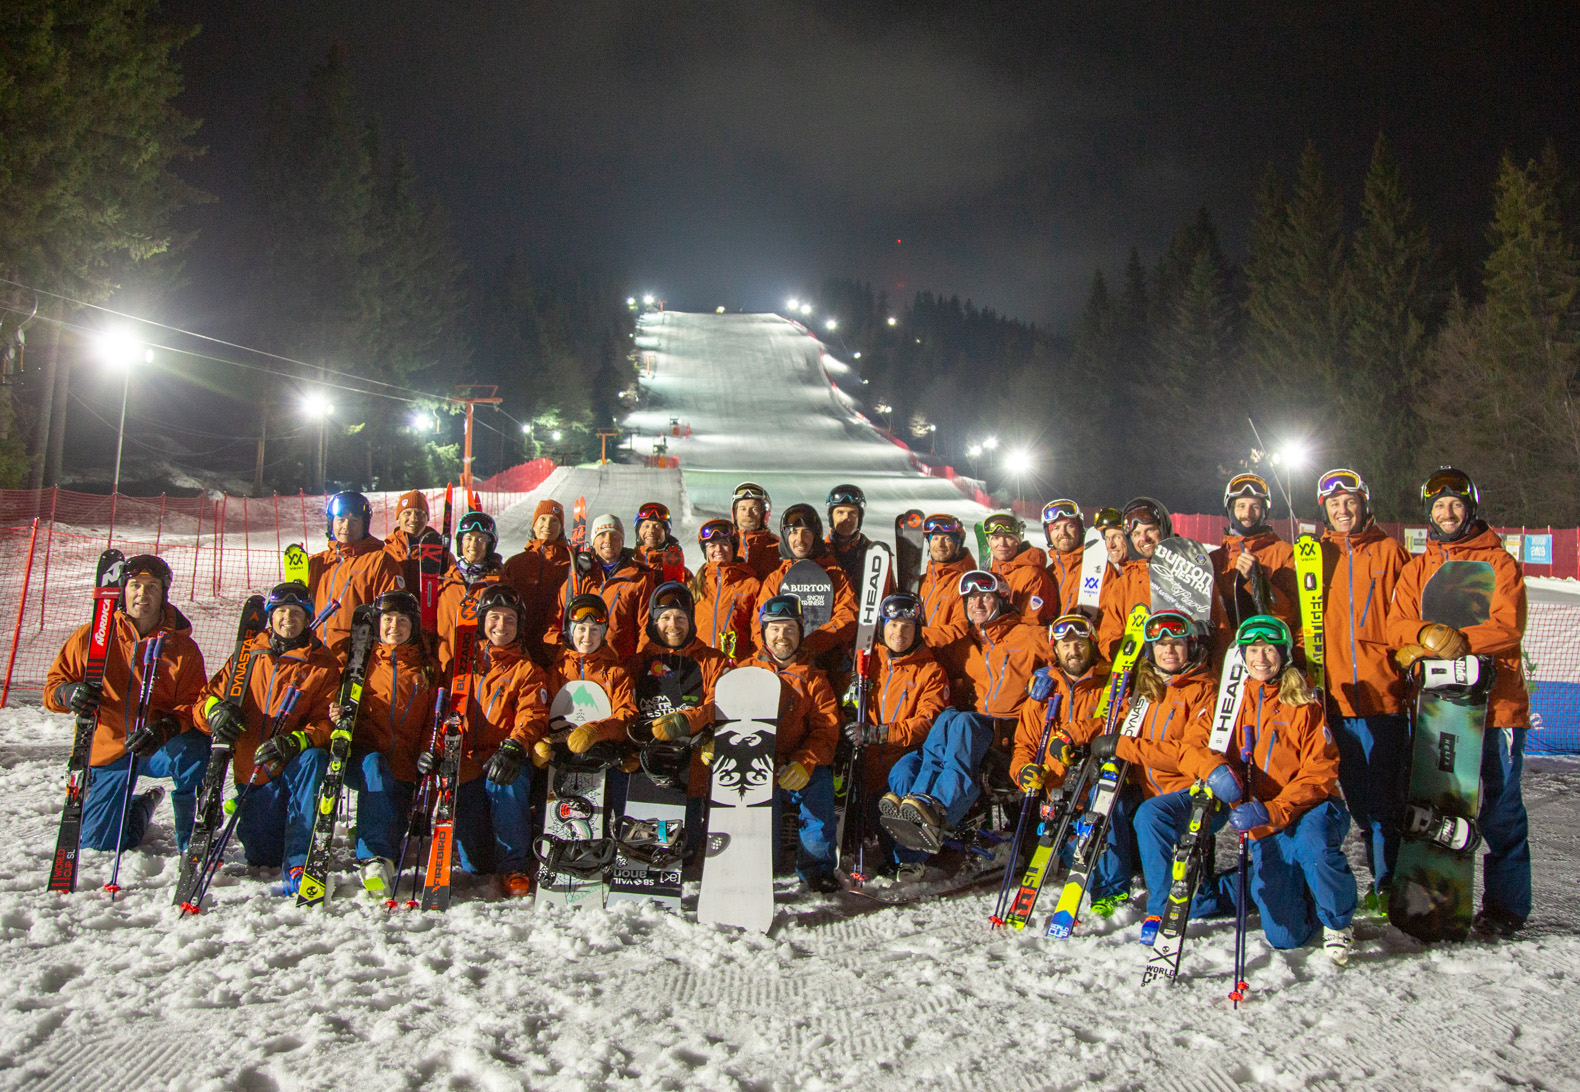 The PSIA-AASI National Team together at the base at the night skiing demo hill at Interski 2019